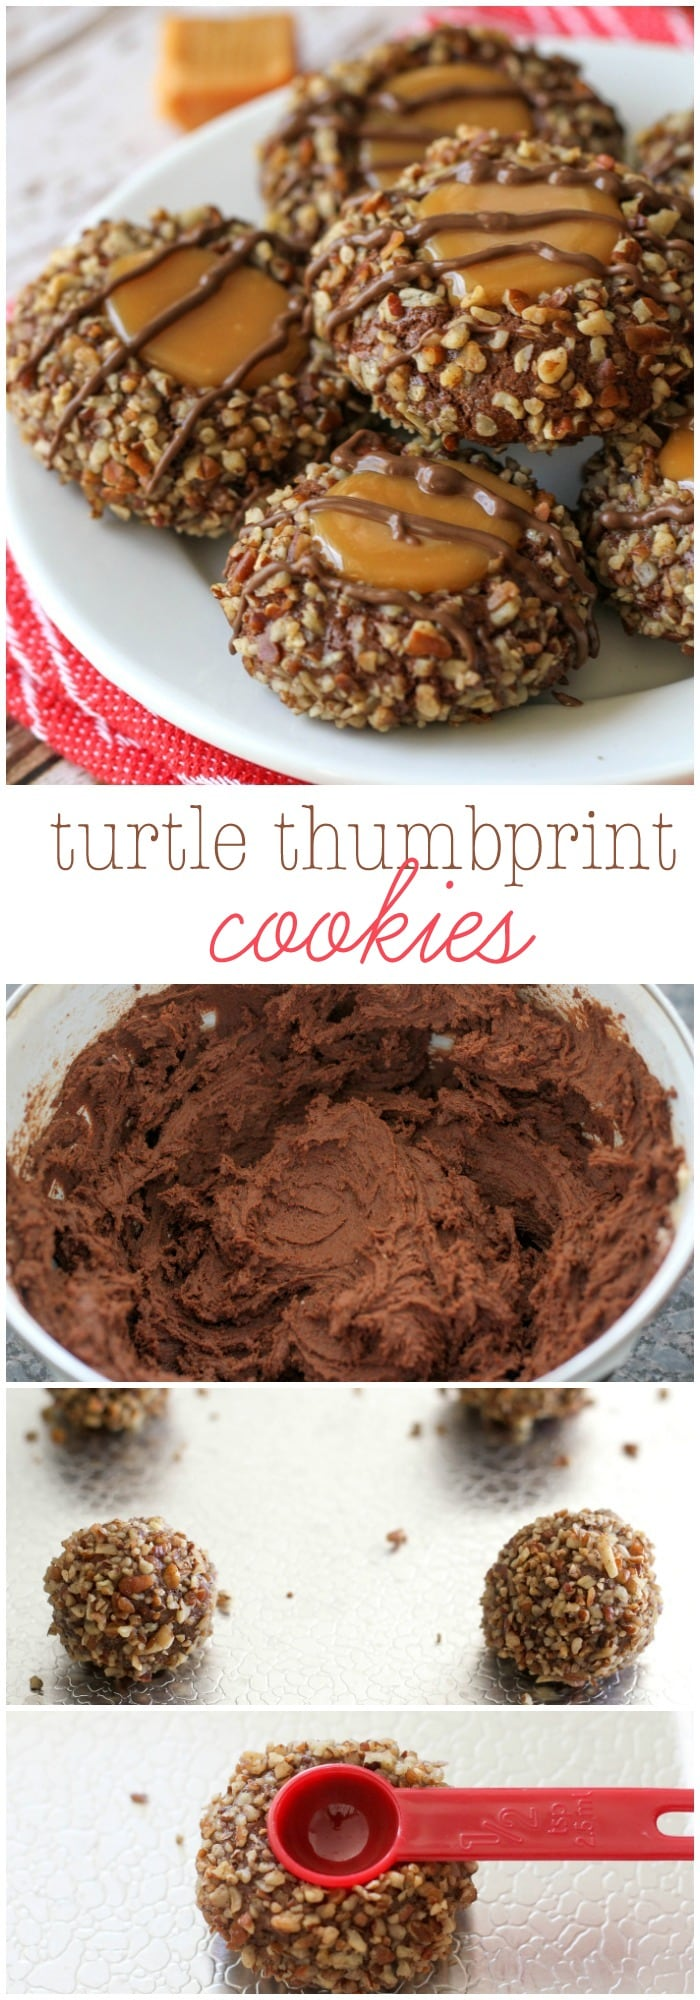 Turtle Thumbprint Cookies - a chocolate, caramel and nut cookie ...